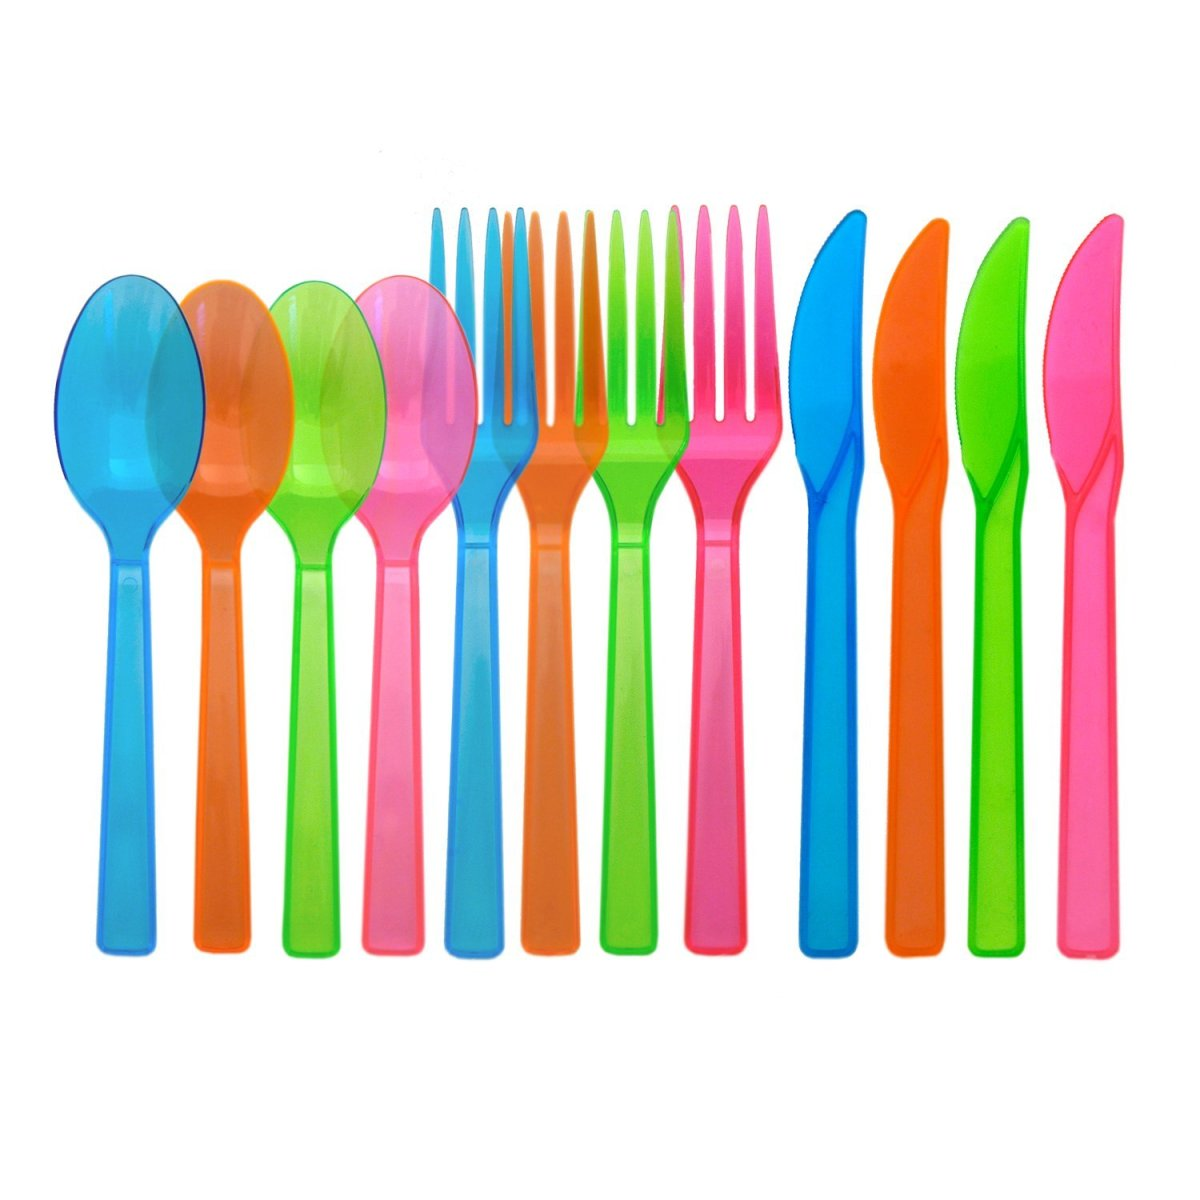 The Future of Plastic Cutlery: Bioplastics vs Plastic